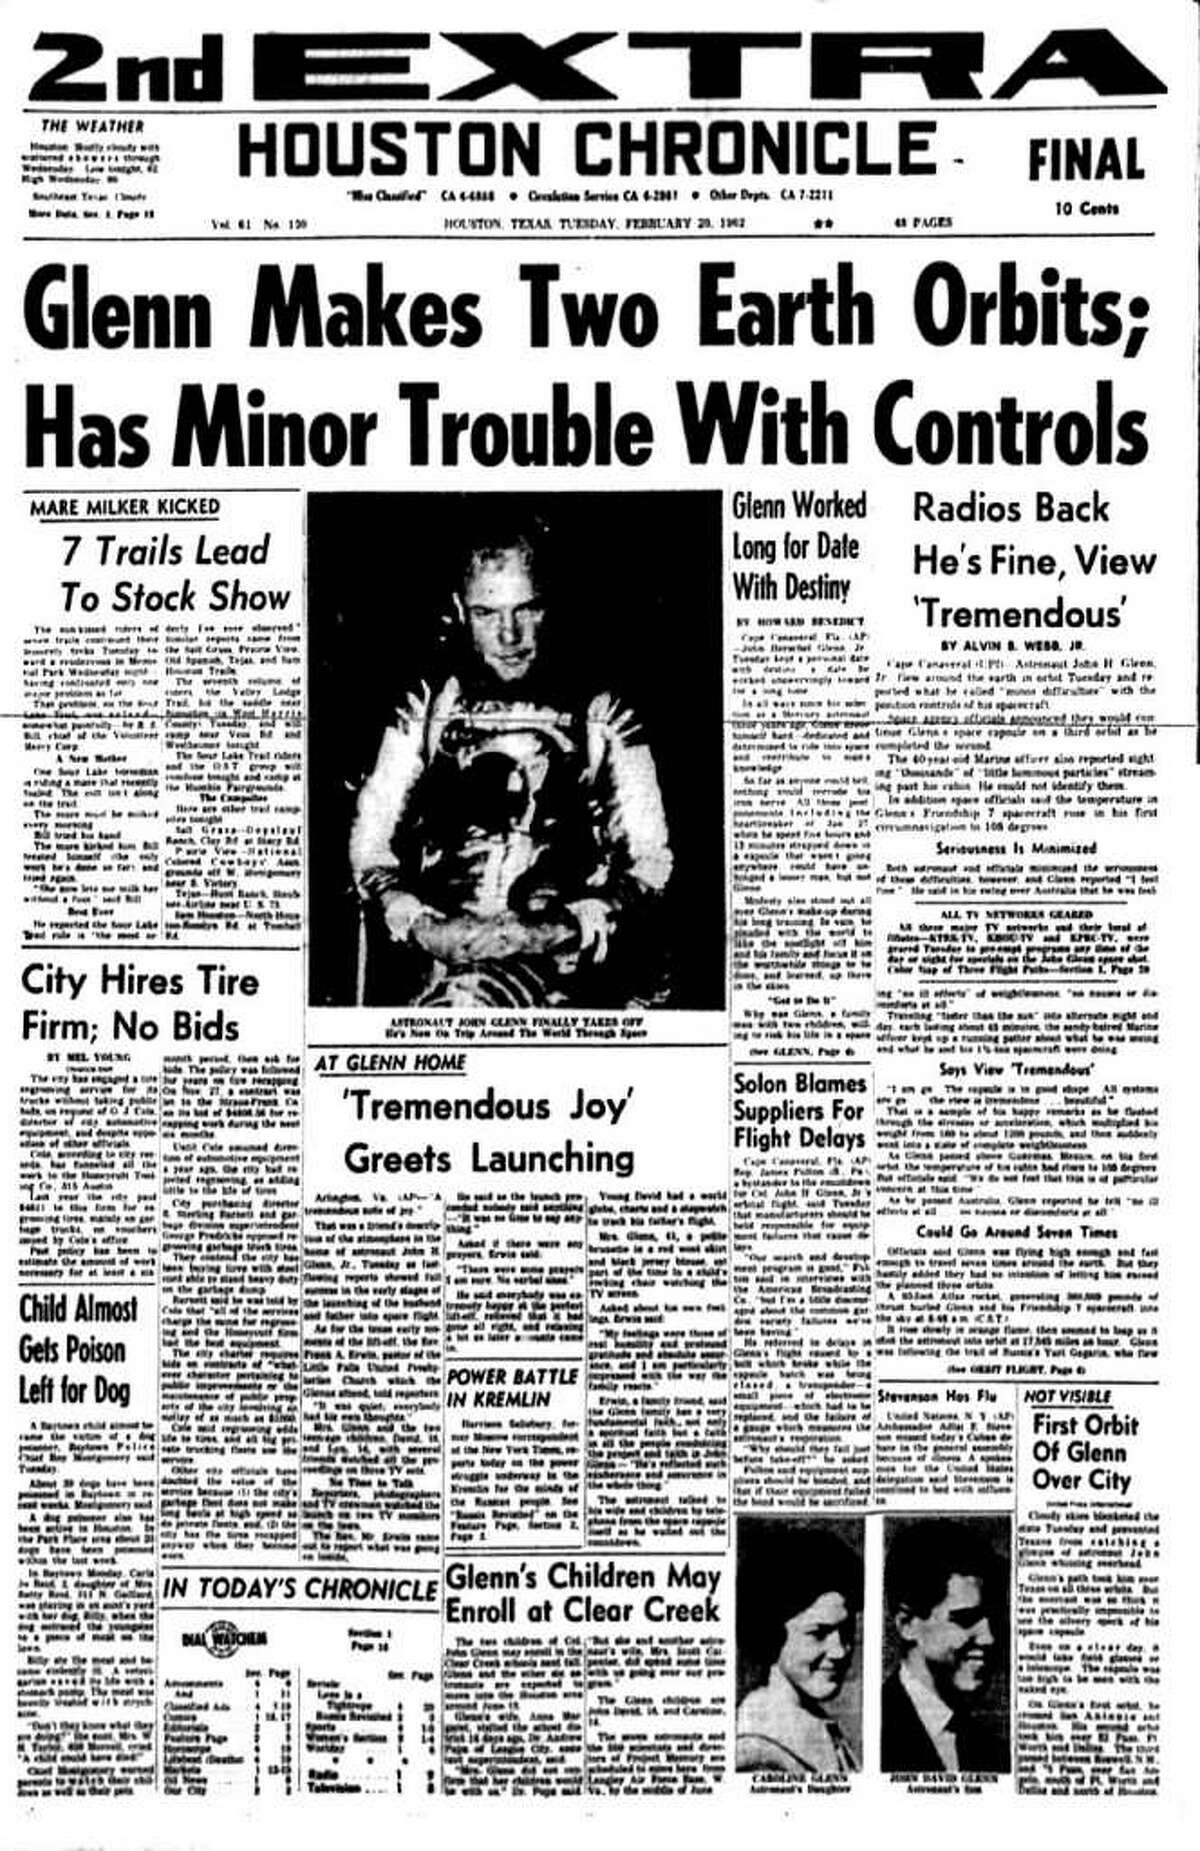 This special extra edition of the Feb. 20, 1962, Chronicle heralds Glenn's triumphant mission, which was still in orbit when the presses rolled.